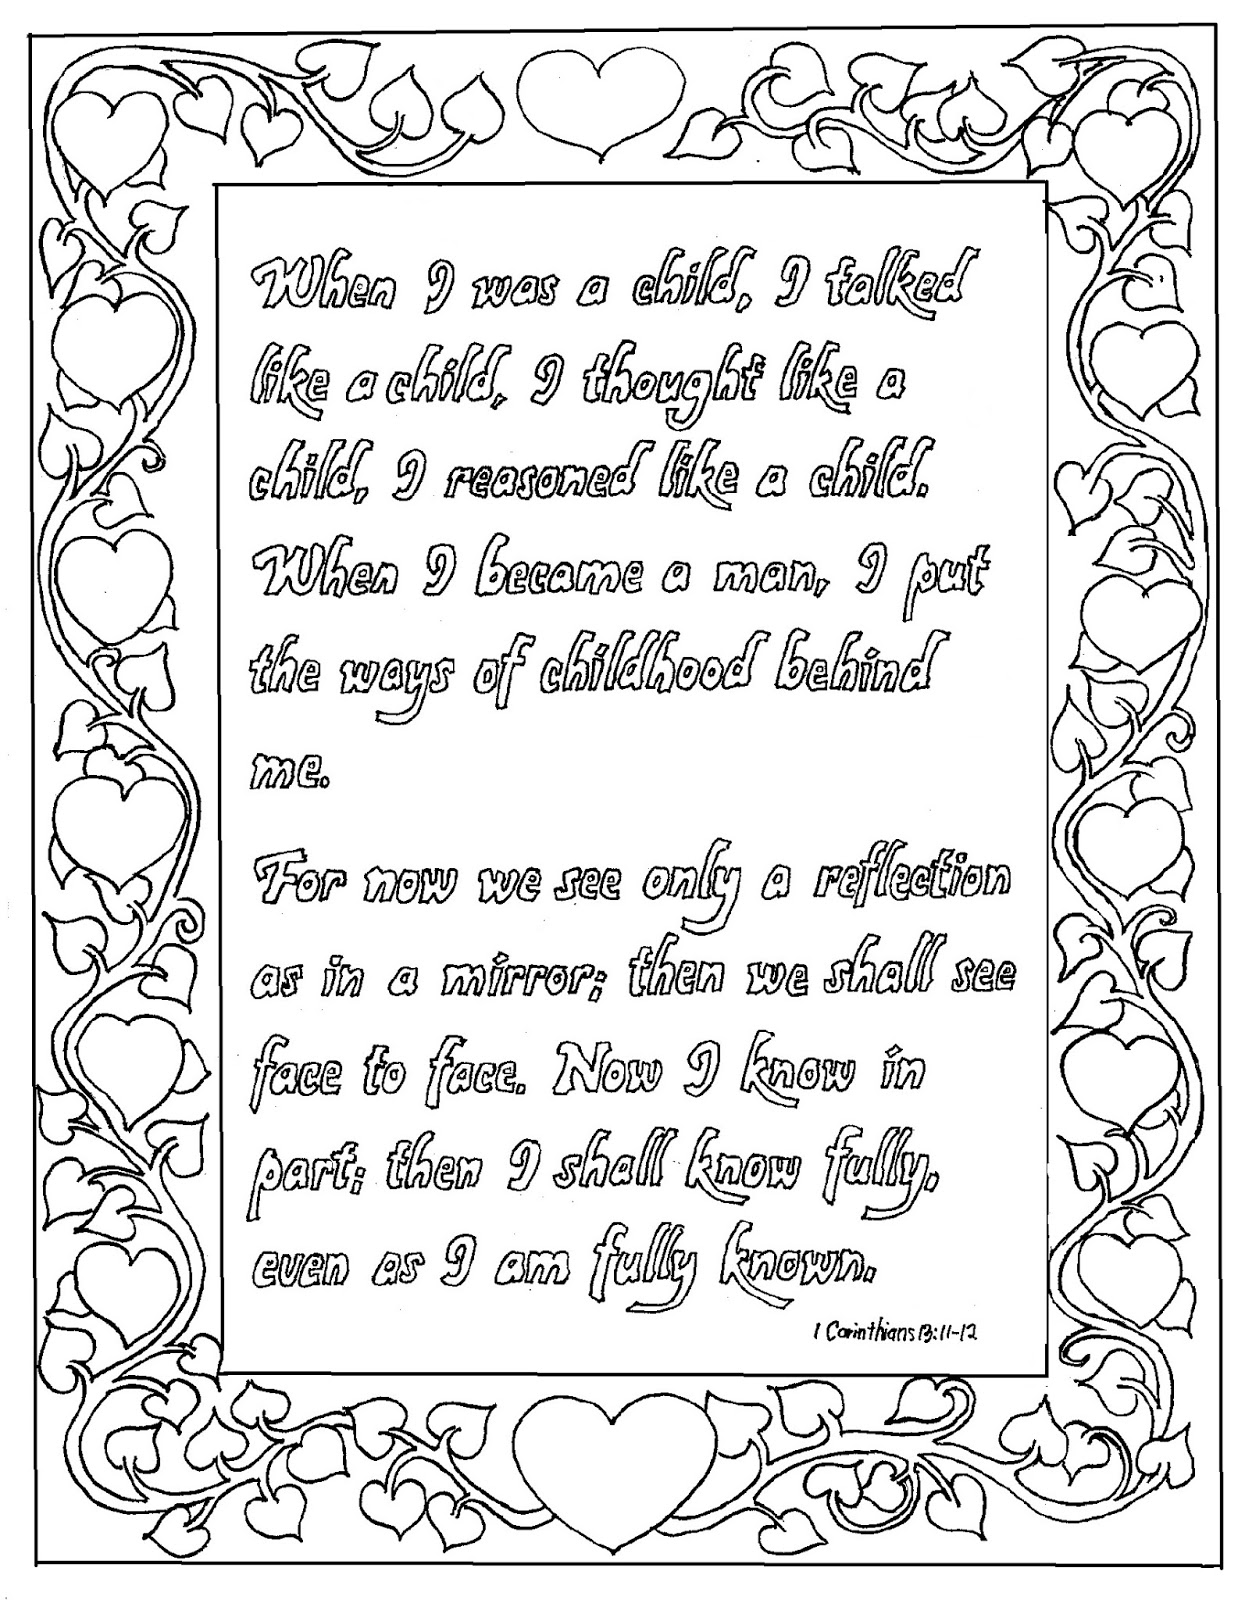 printable 1 corinthians 12 coloring pages coloring pages for kids by mr adron printable my grace corinthians 12 coloring pages 1 printable